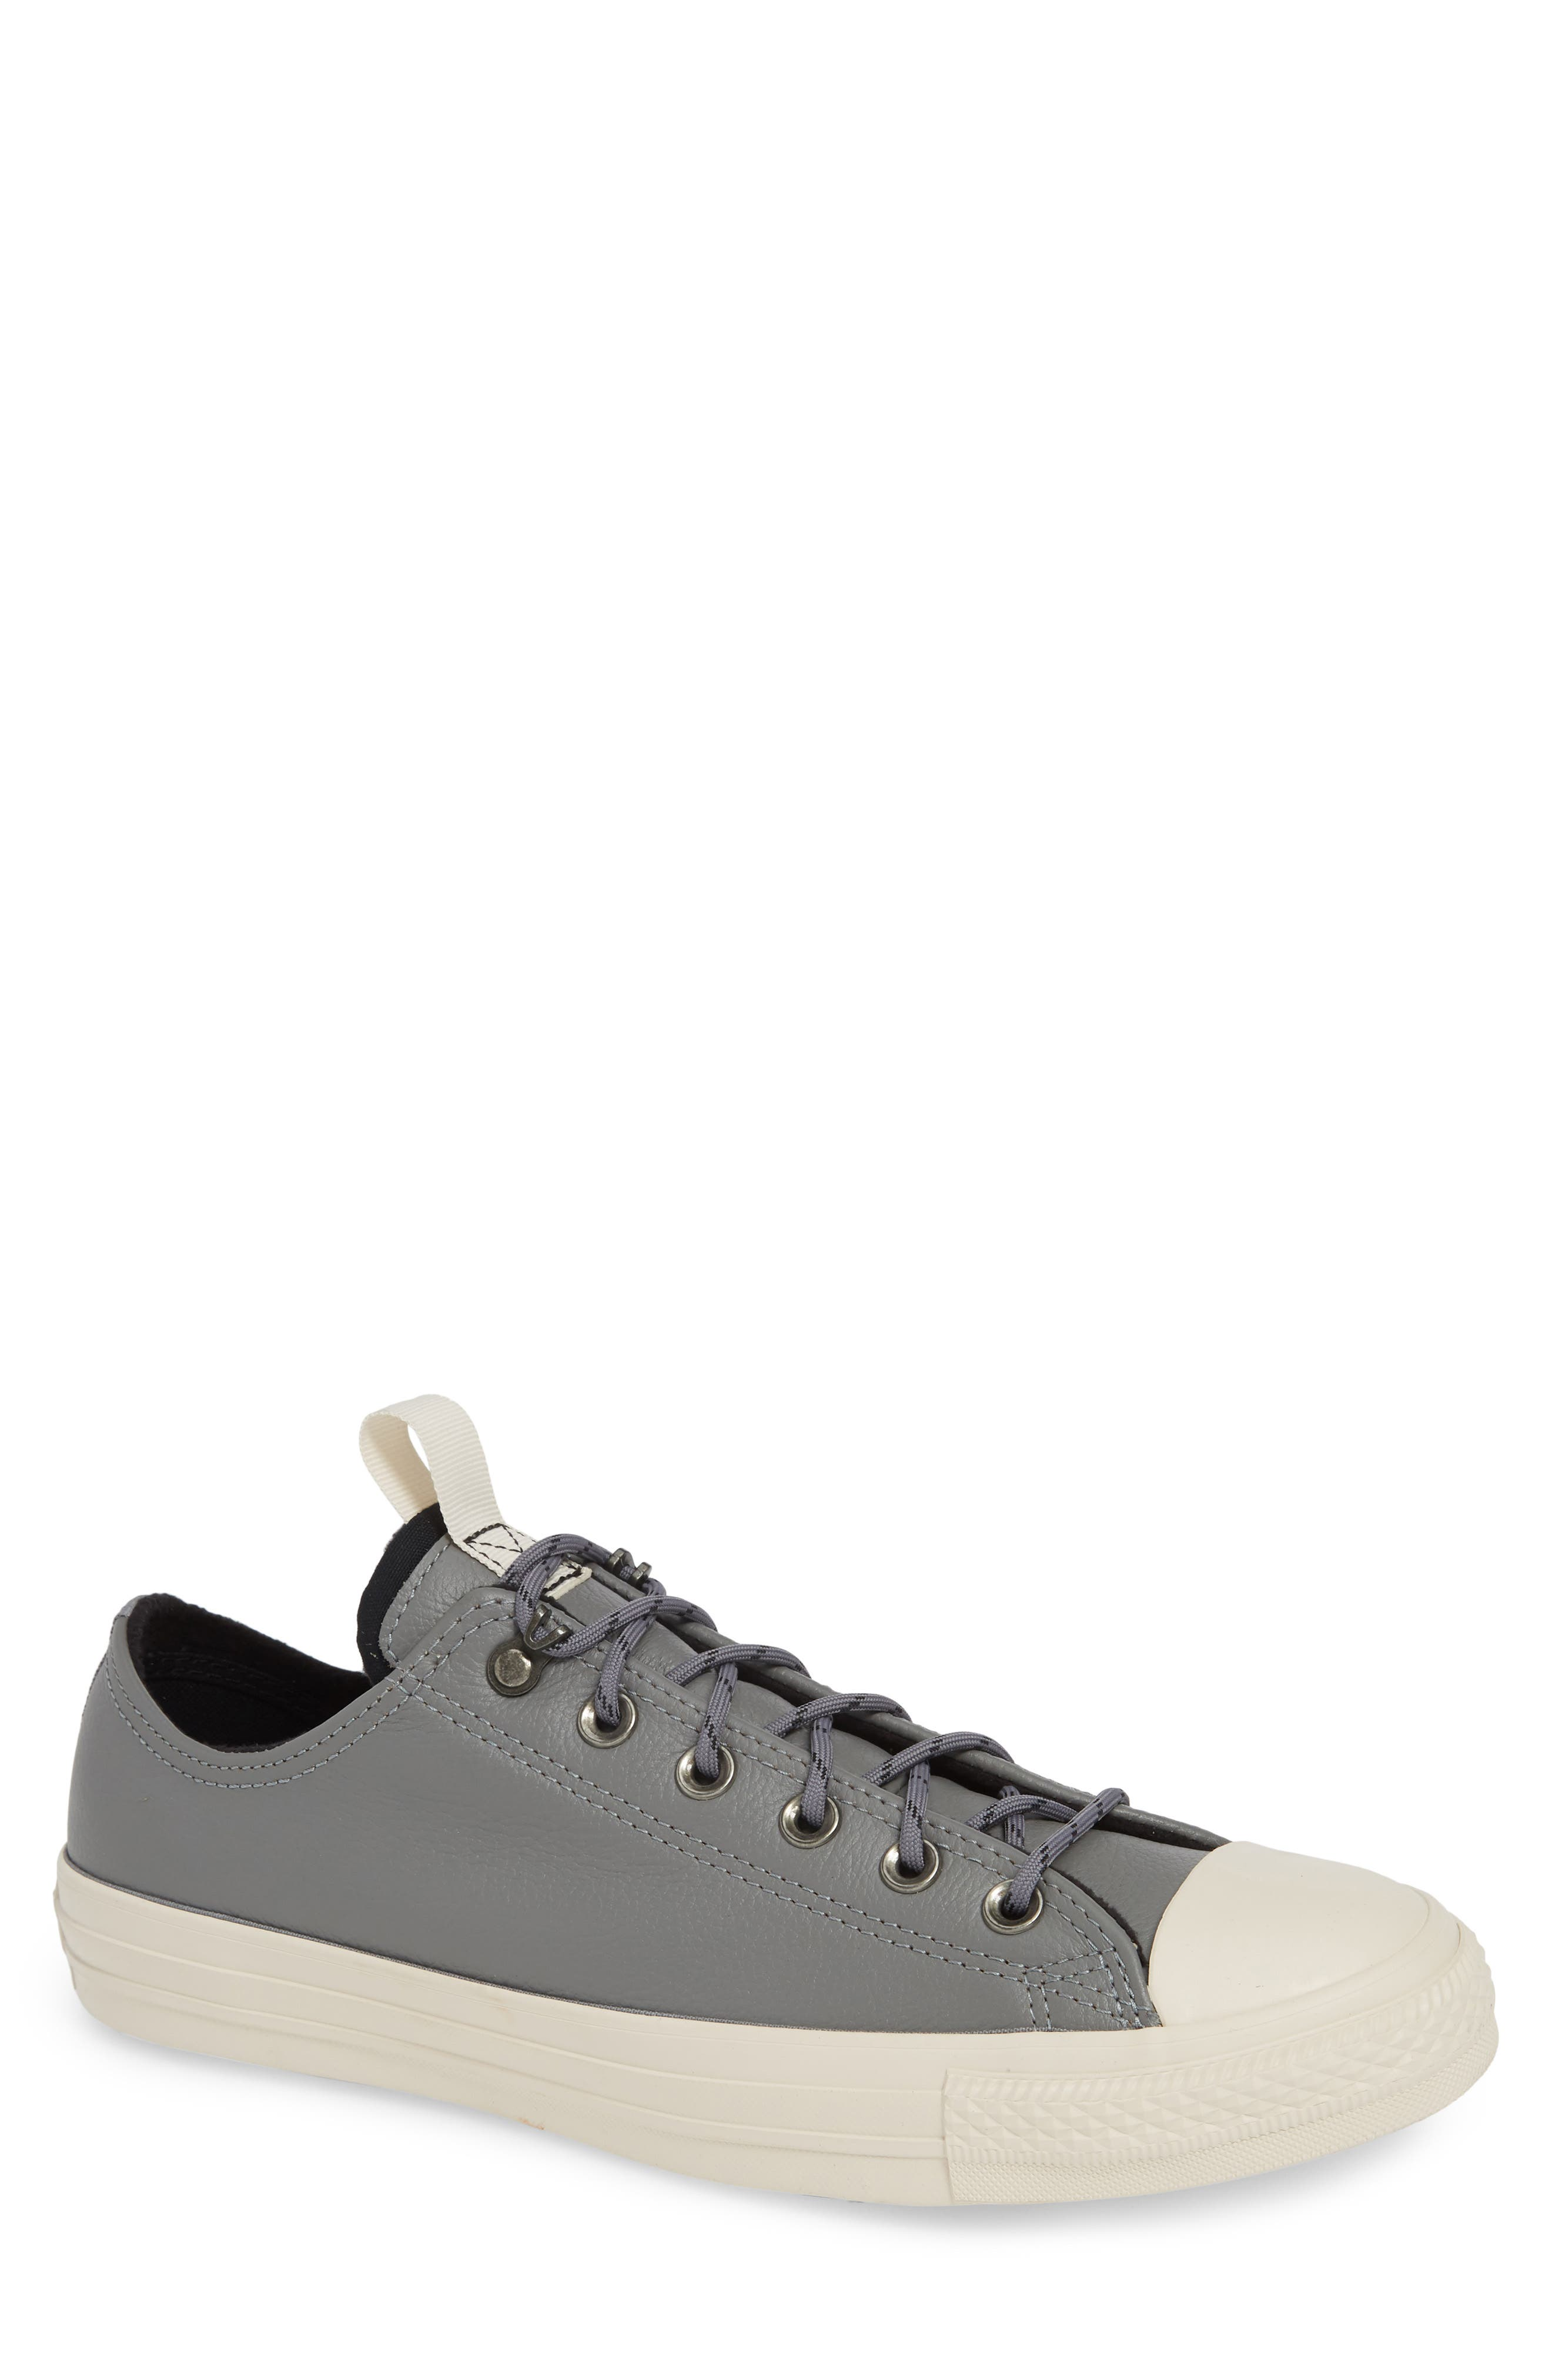 Chuck Taylor<sup>®</sup> All Star<sup>®</sup> Desert Storm Ox Sneaker,                             Main thumbnail 1, color,                             WHITE/ LIGHT FAWN/ EGRET